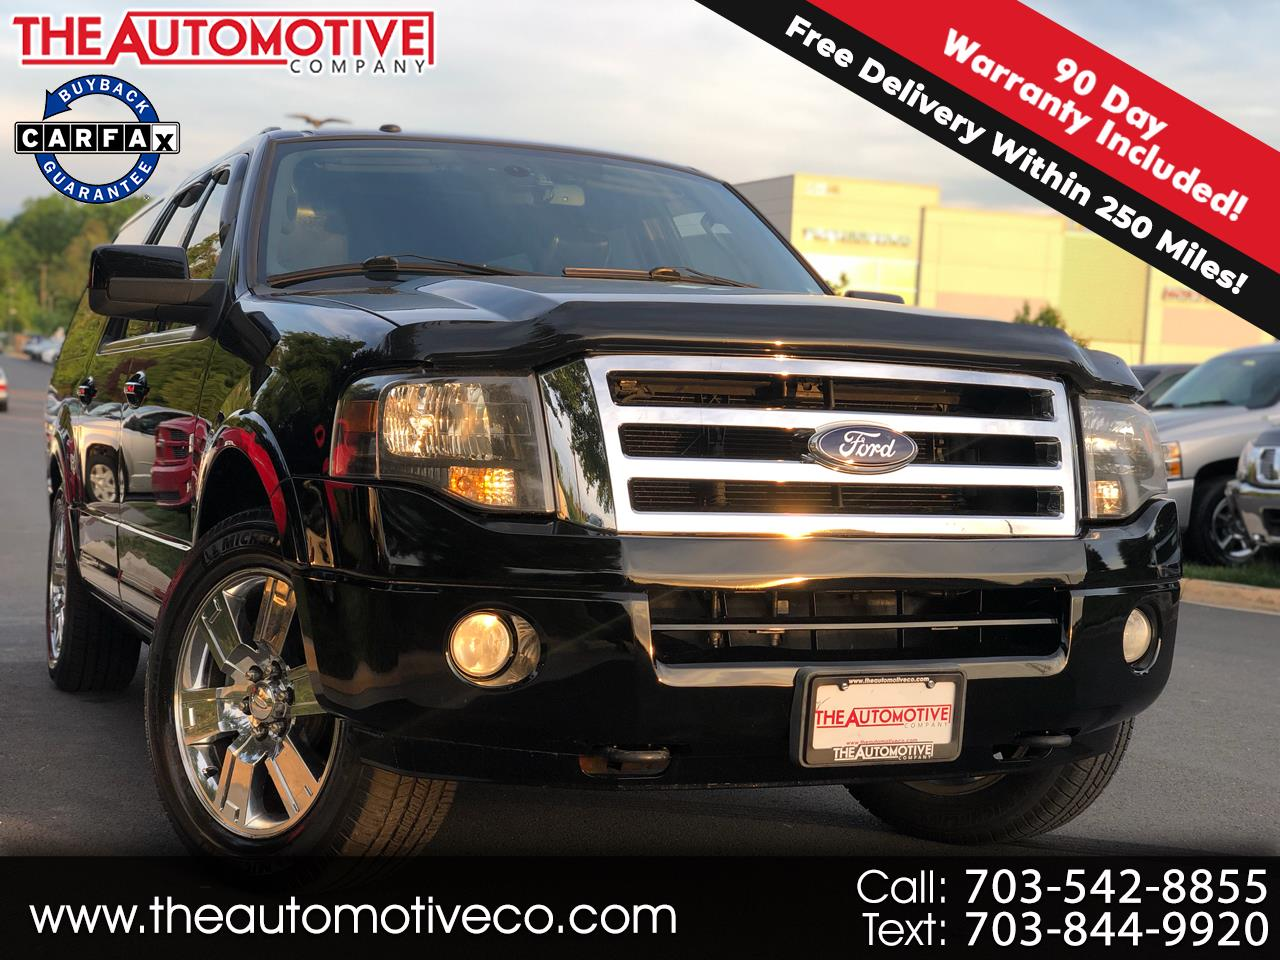 2009 Ford Expedition EL 4WD 4dr Limited